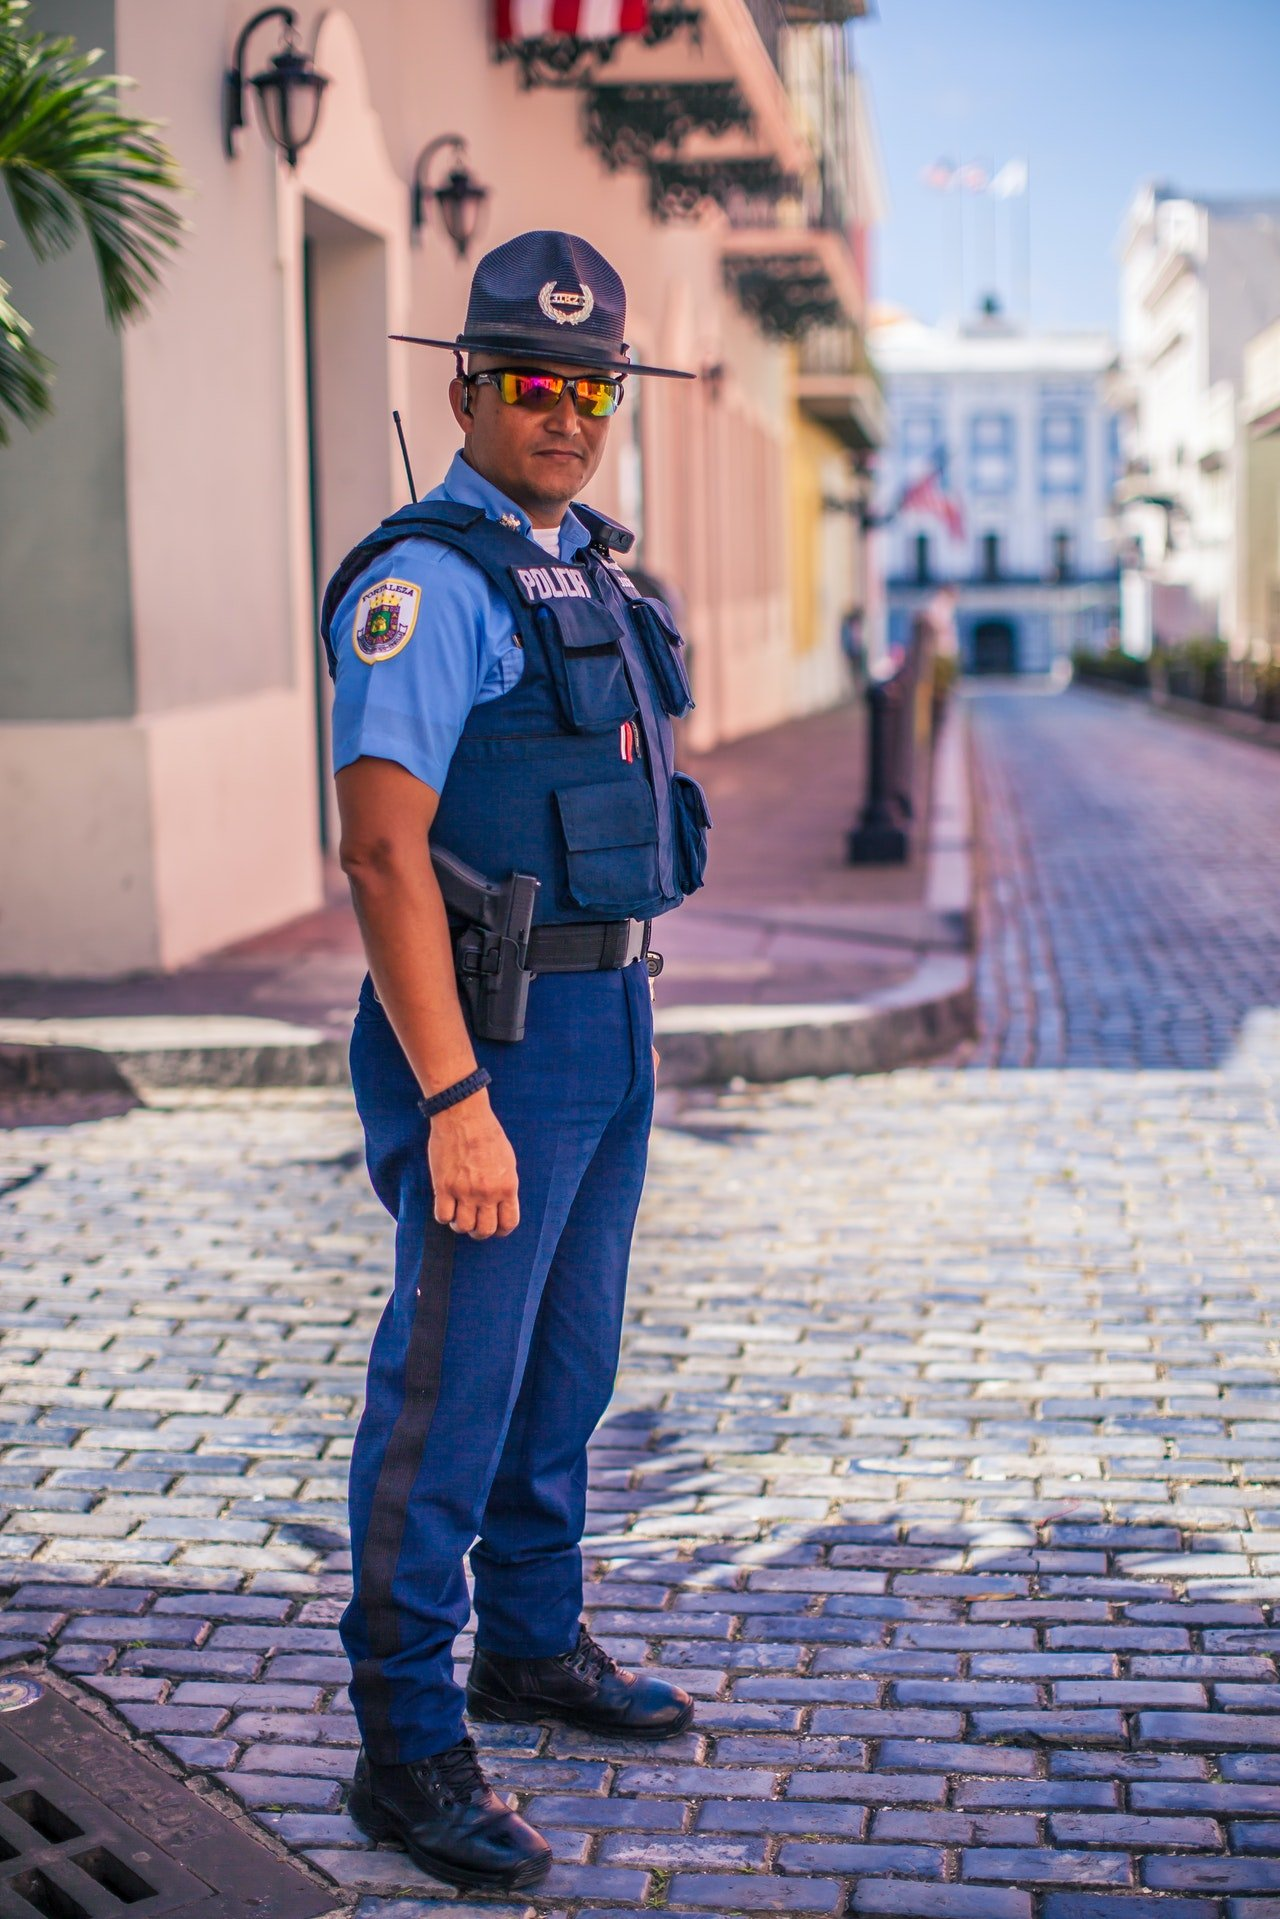 The officer replied to the teenager with a look of seriousness | Photo: Pexels